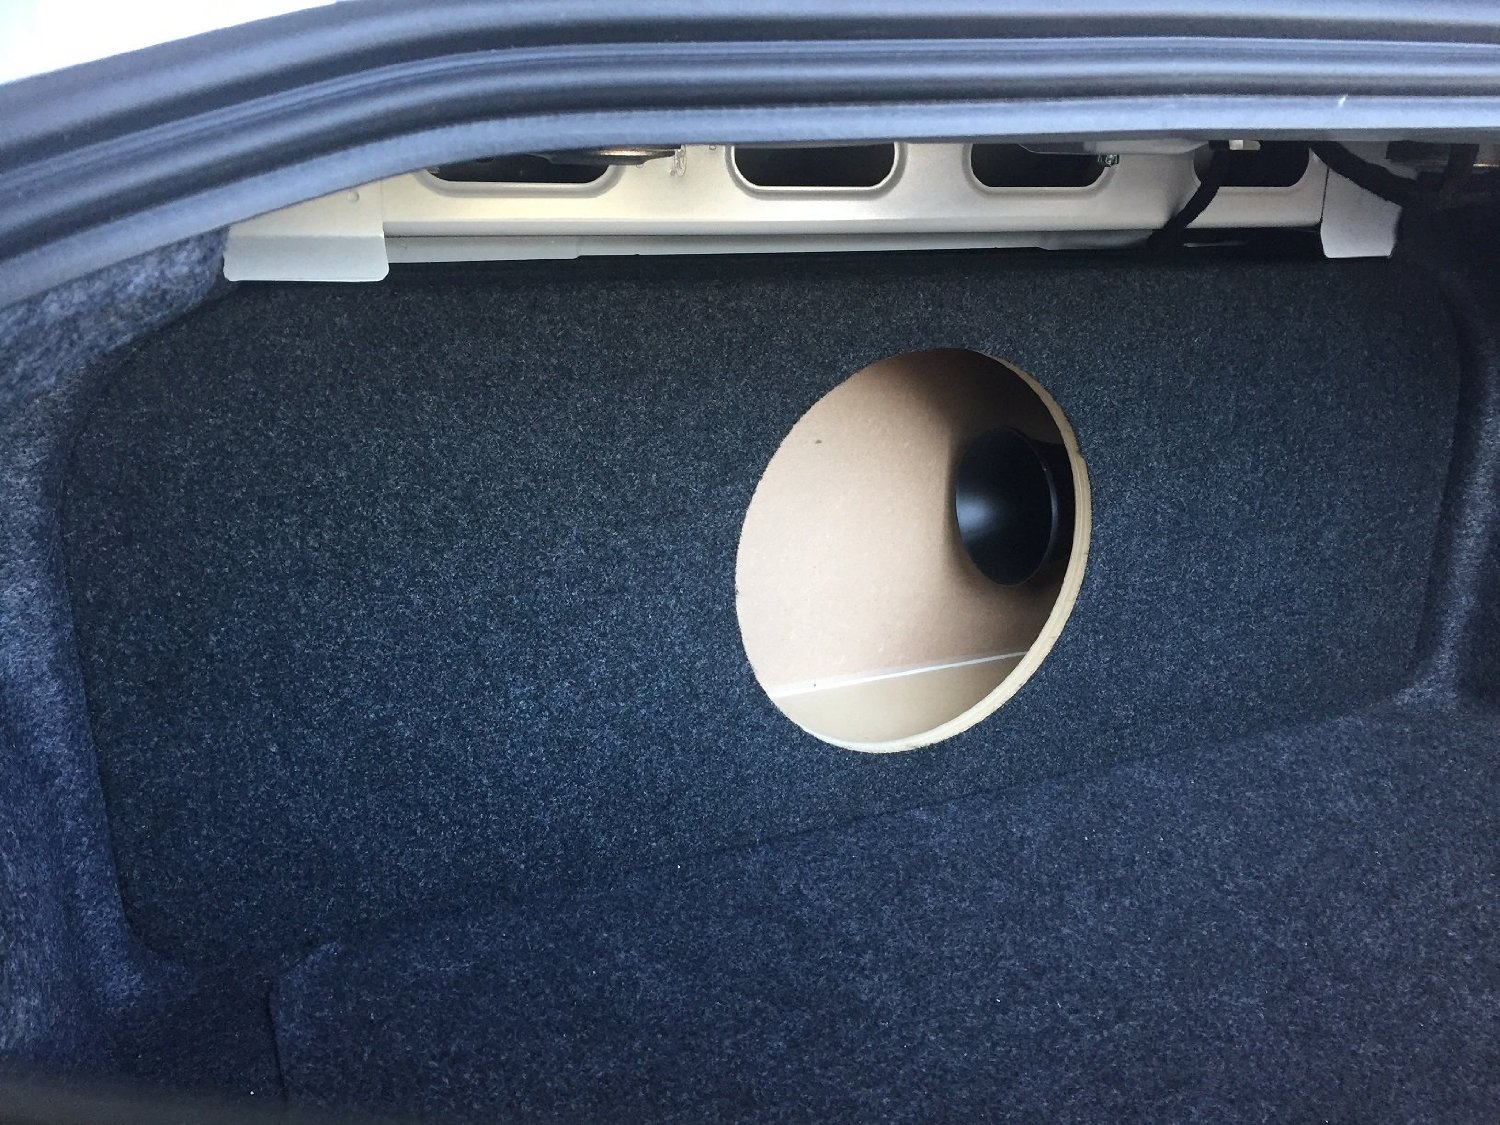 Buy Custom Ported / Vented Sub Box Subwoofer Enclosure for 1 12